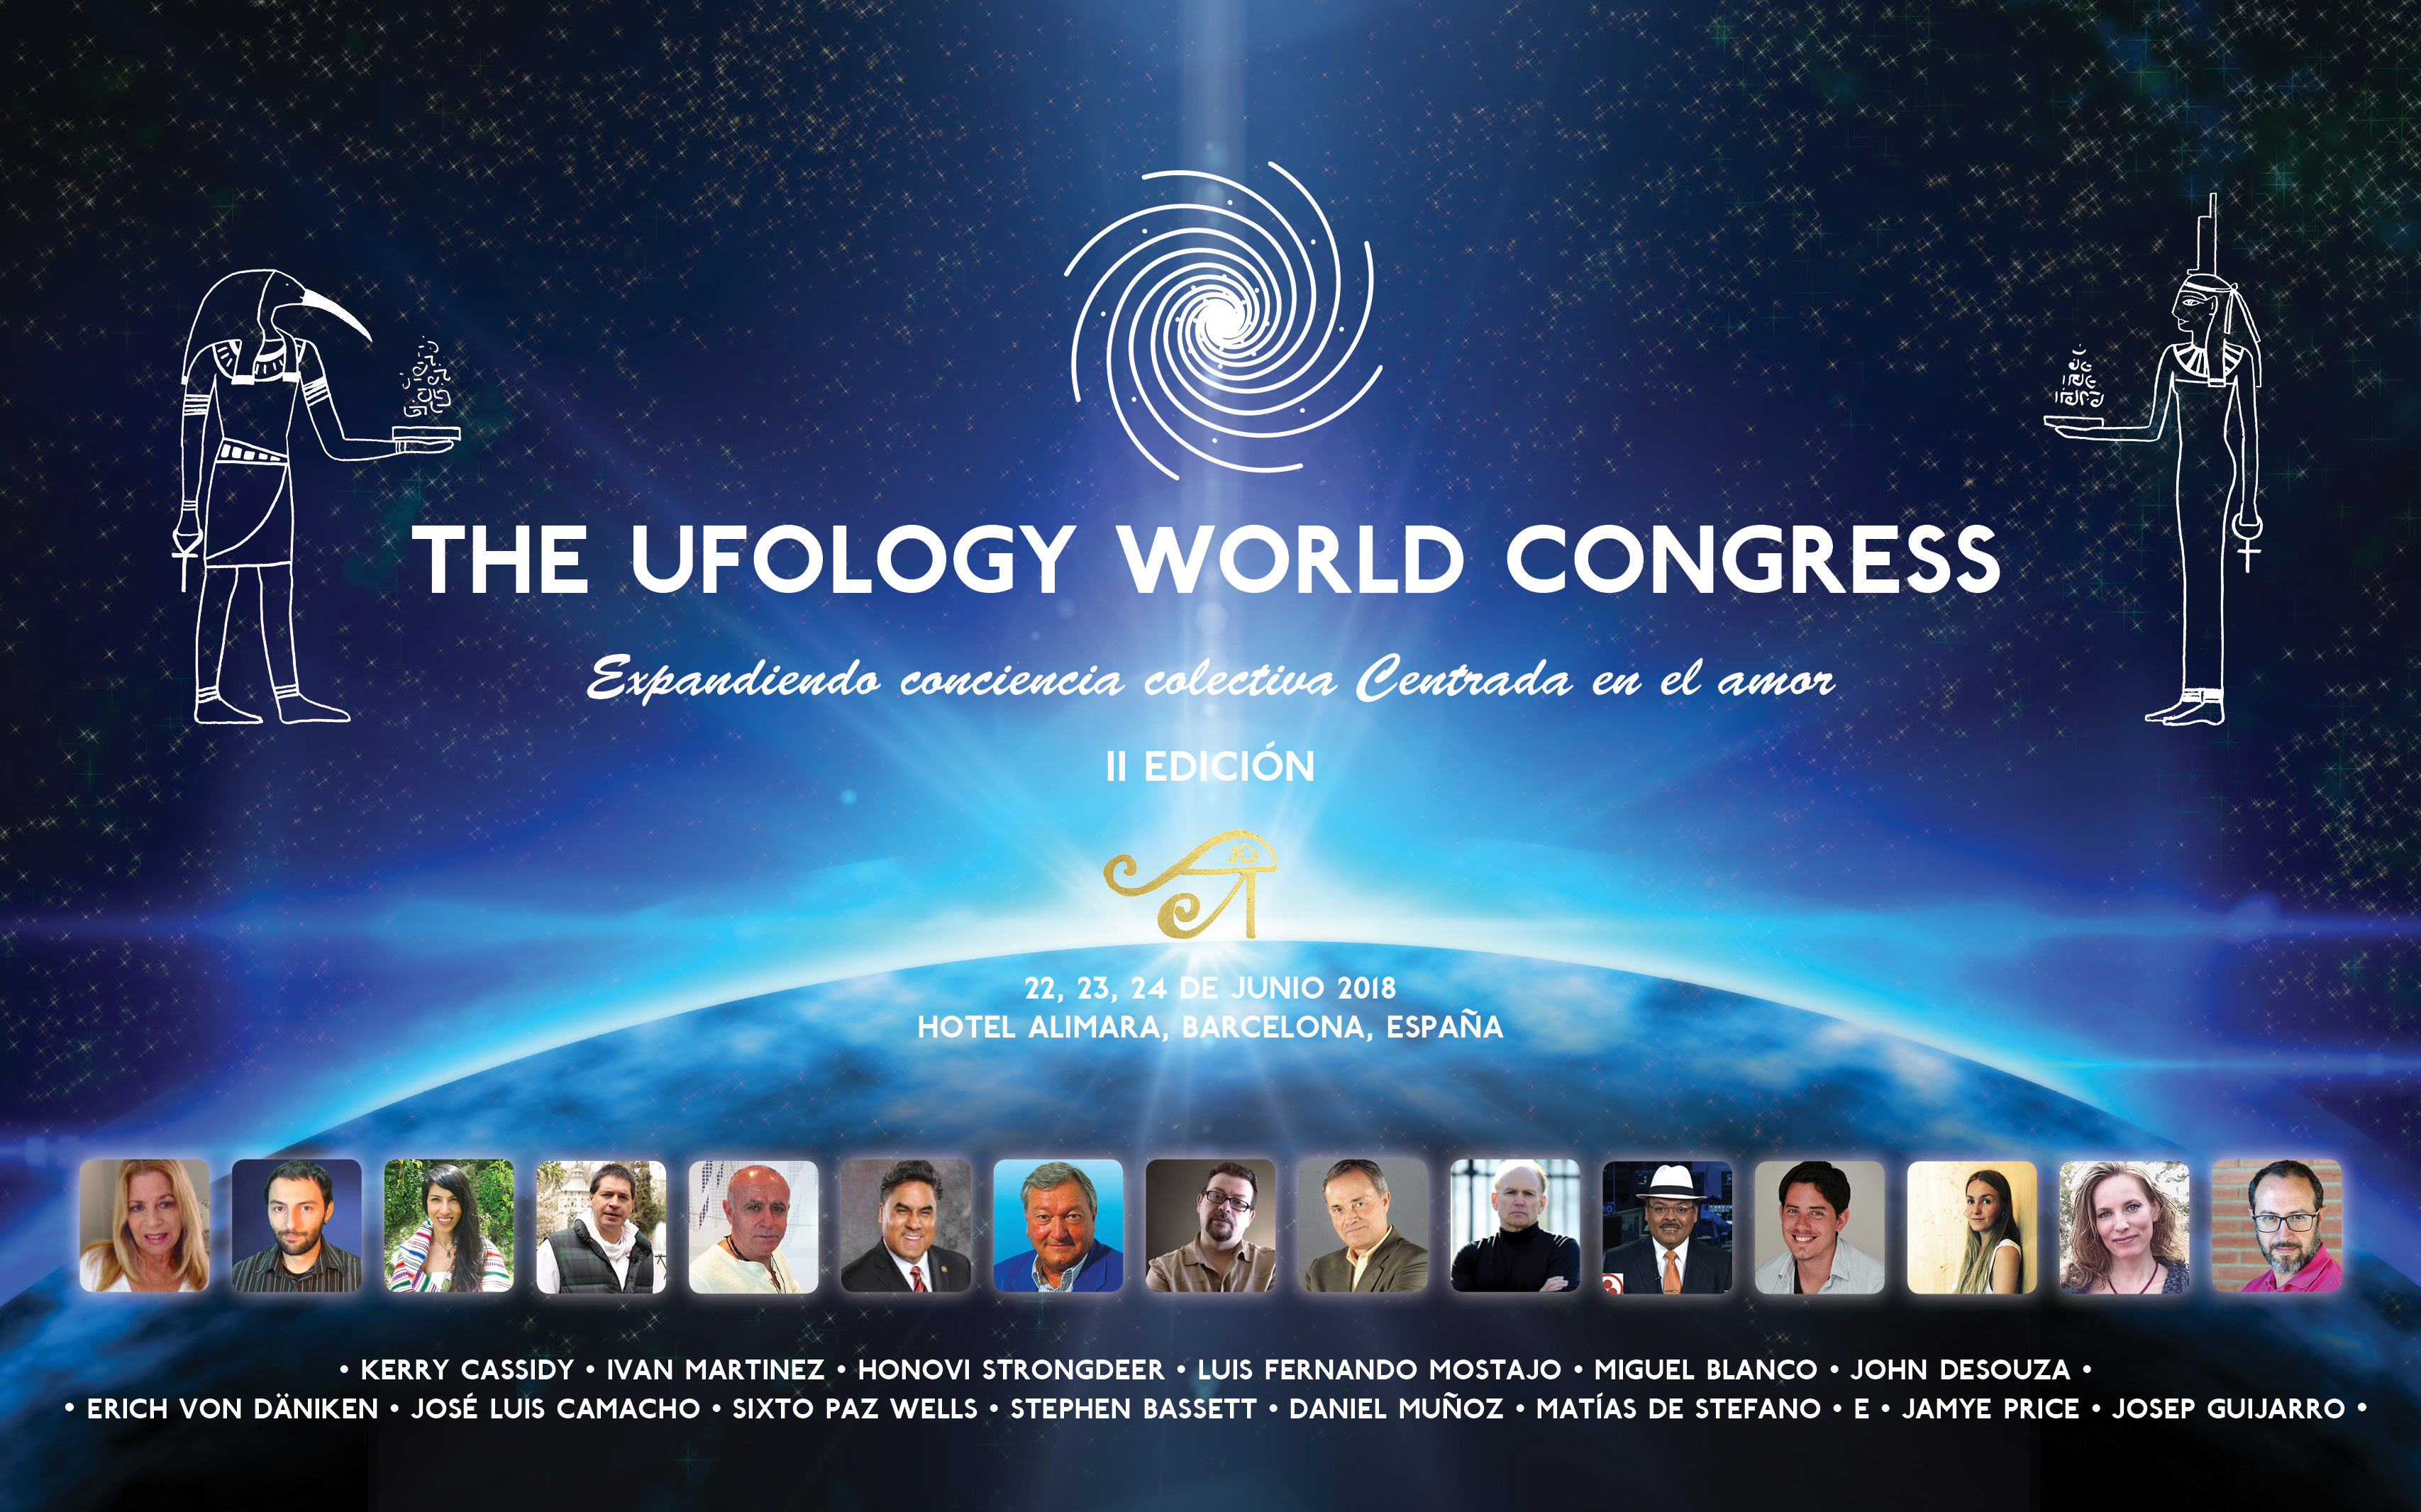 ufology world congress